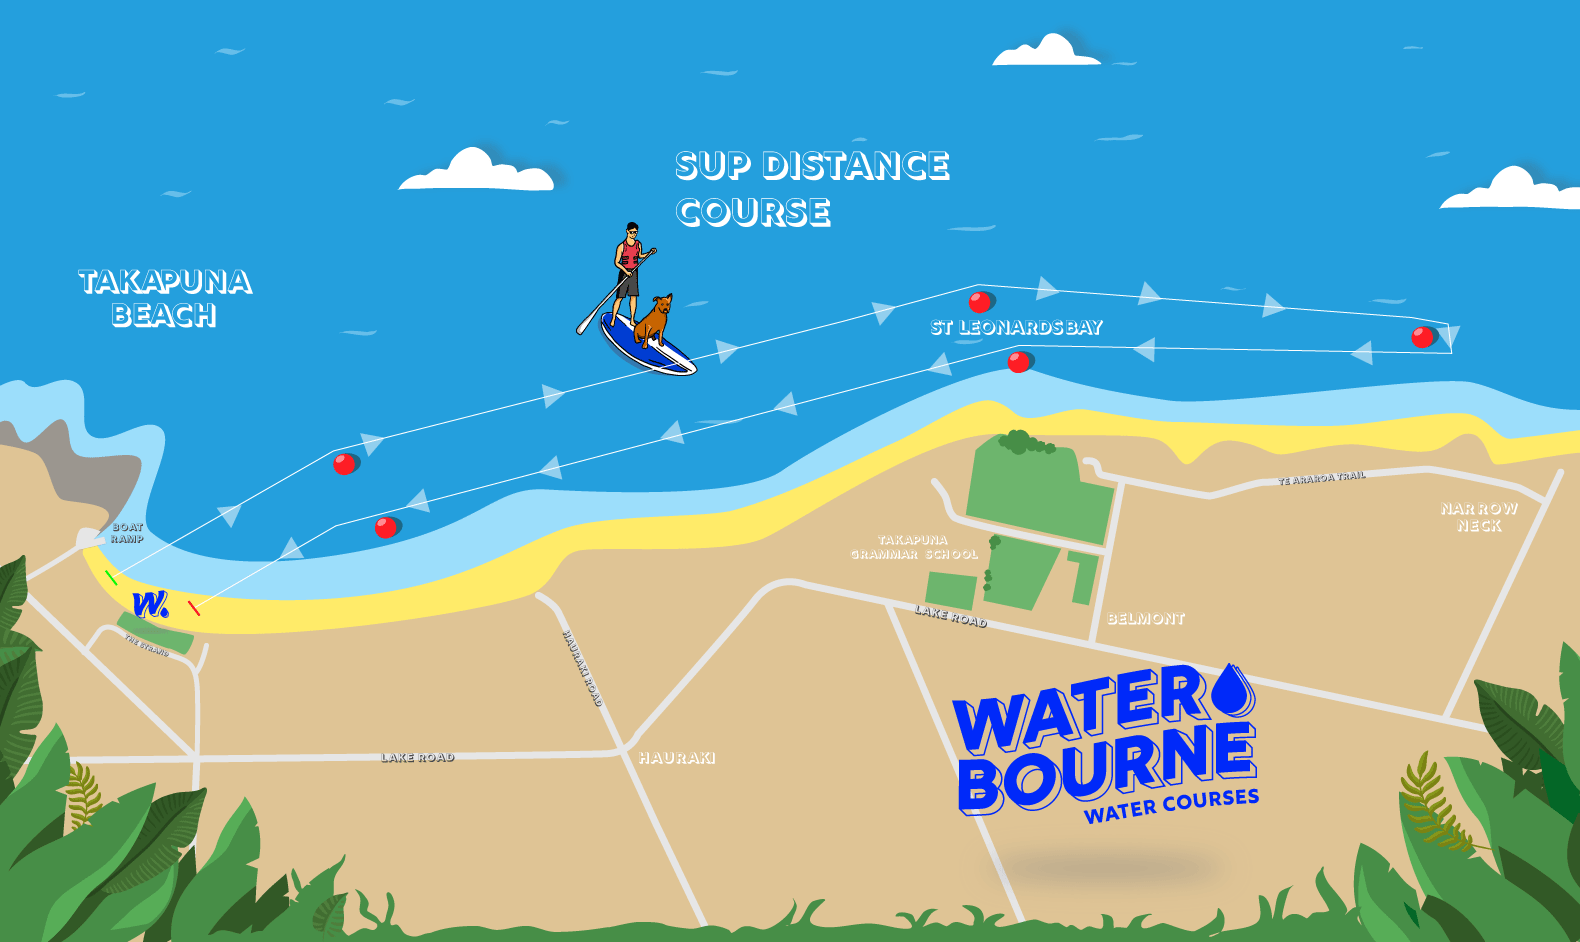 SUP DIstance Course b